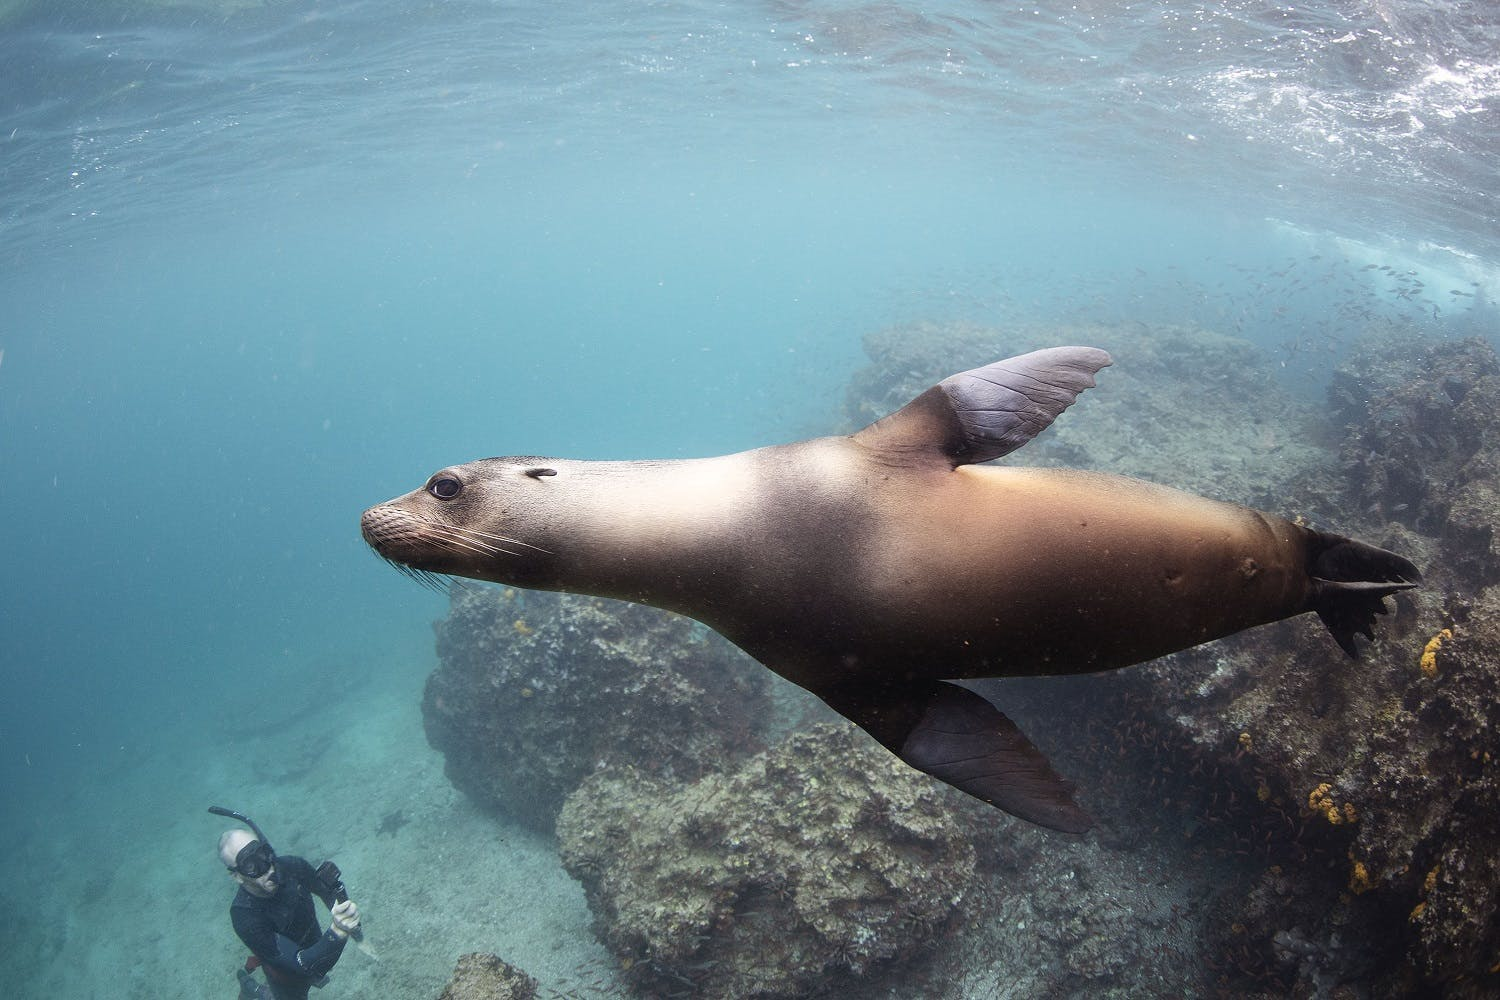 Galapagos photography tips